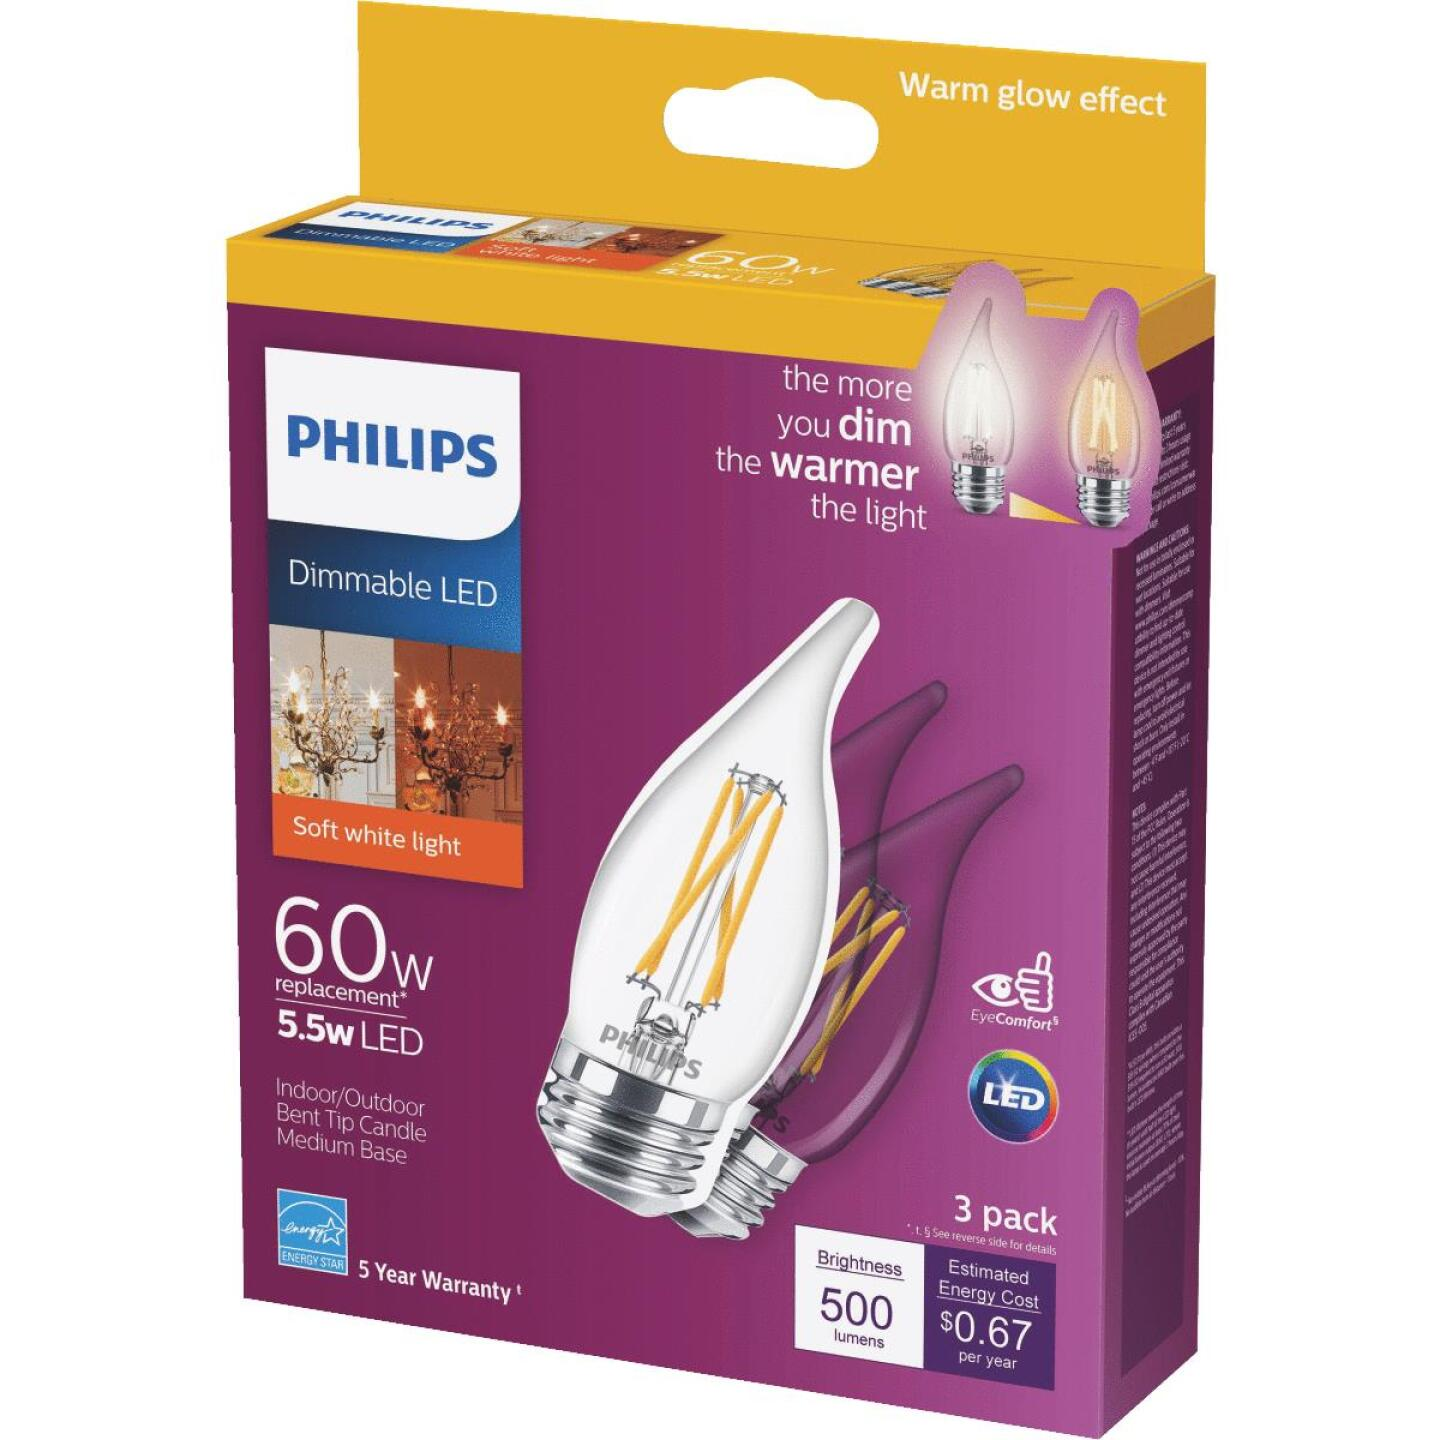 Philips Warm Glow 60W Equivalent Soft White BA11 Medium Dimmable LED Decorative Light Bulb (3-Pack) Image 1